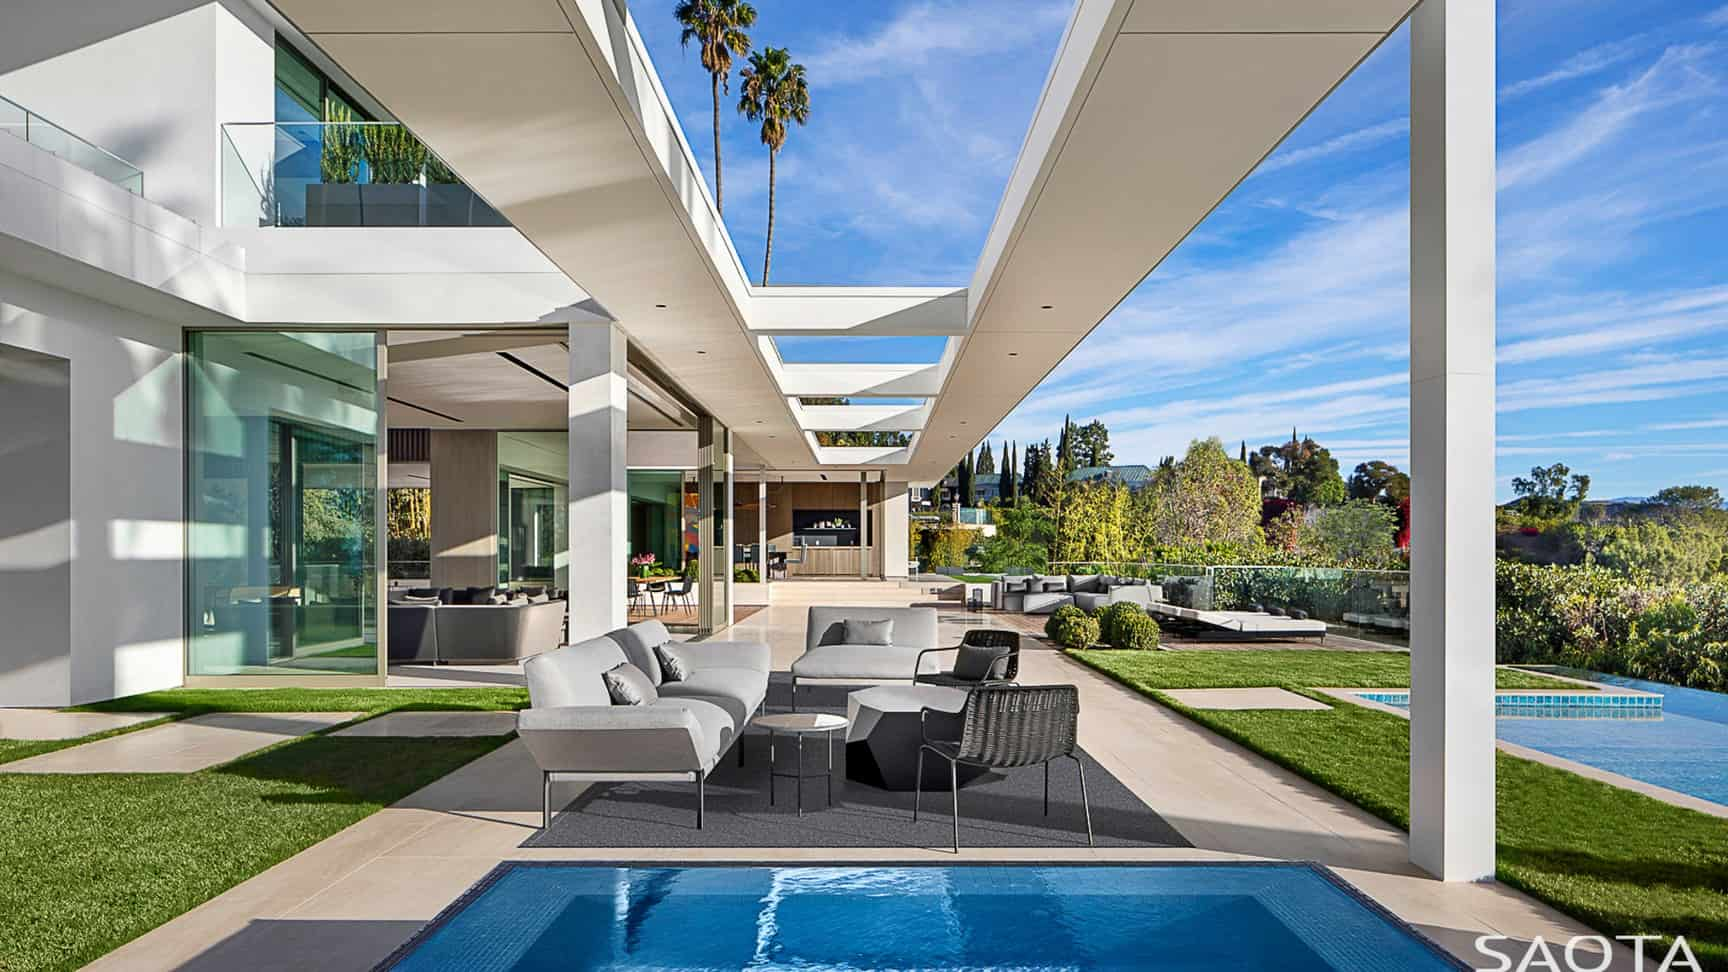 Modern house with a modish set of patio furniture. The sofa set and the table look so stylish.